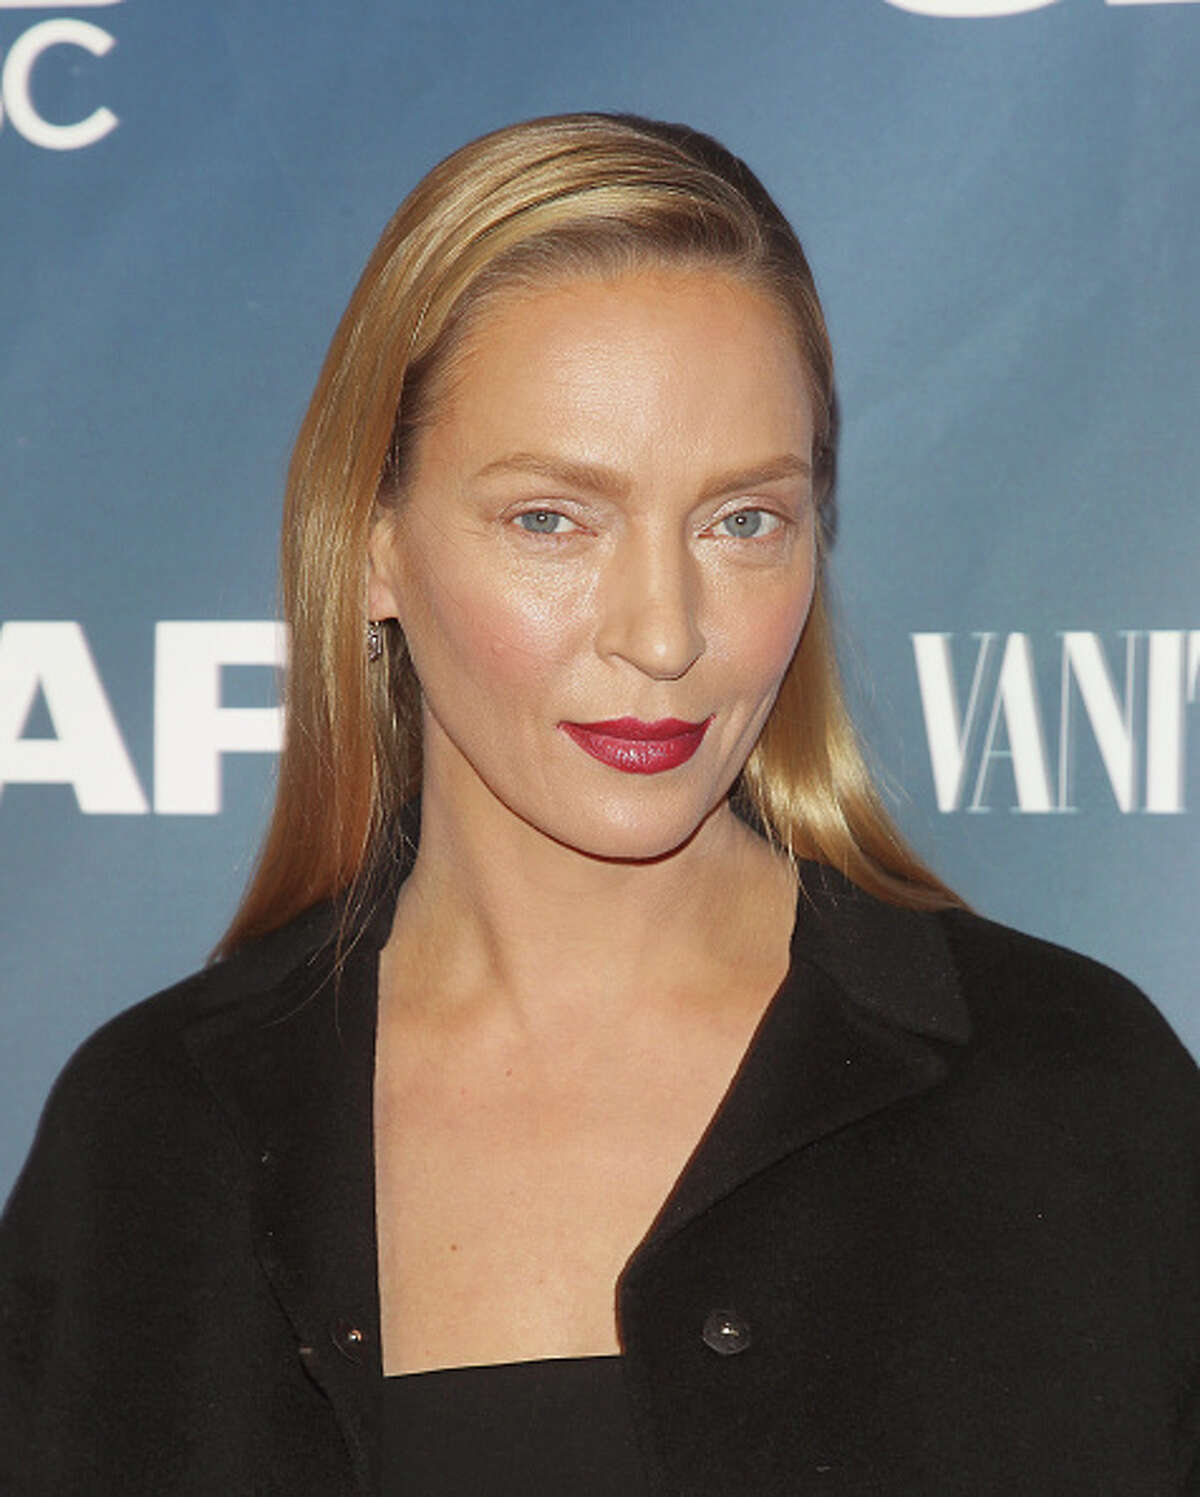 """NEW YORK, NY - FEBRUARY 09: Actress Uma Thurman attends """"The Slap"""" premiere party at The New Museum on February 9, 2015 in New York City. (Photo by Jim Spellman/WireImage)"""